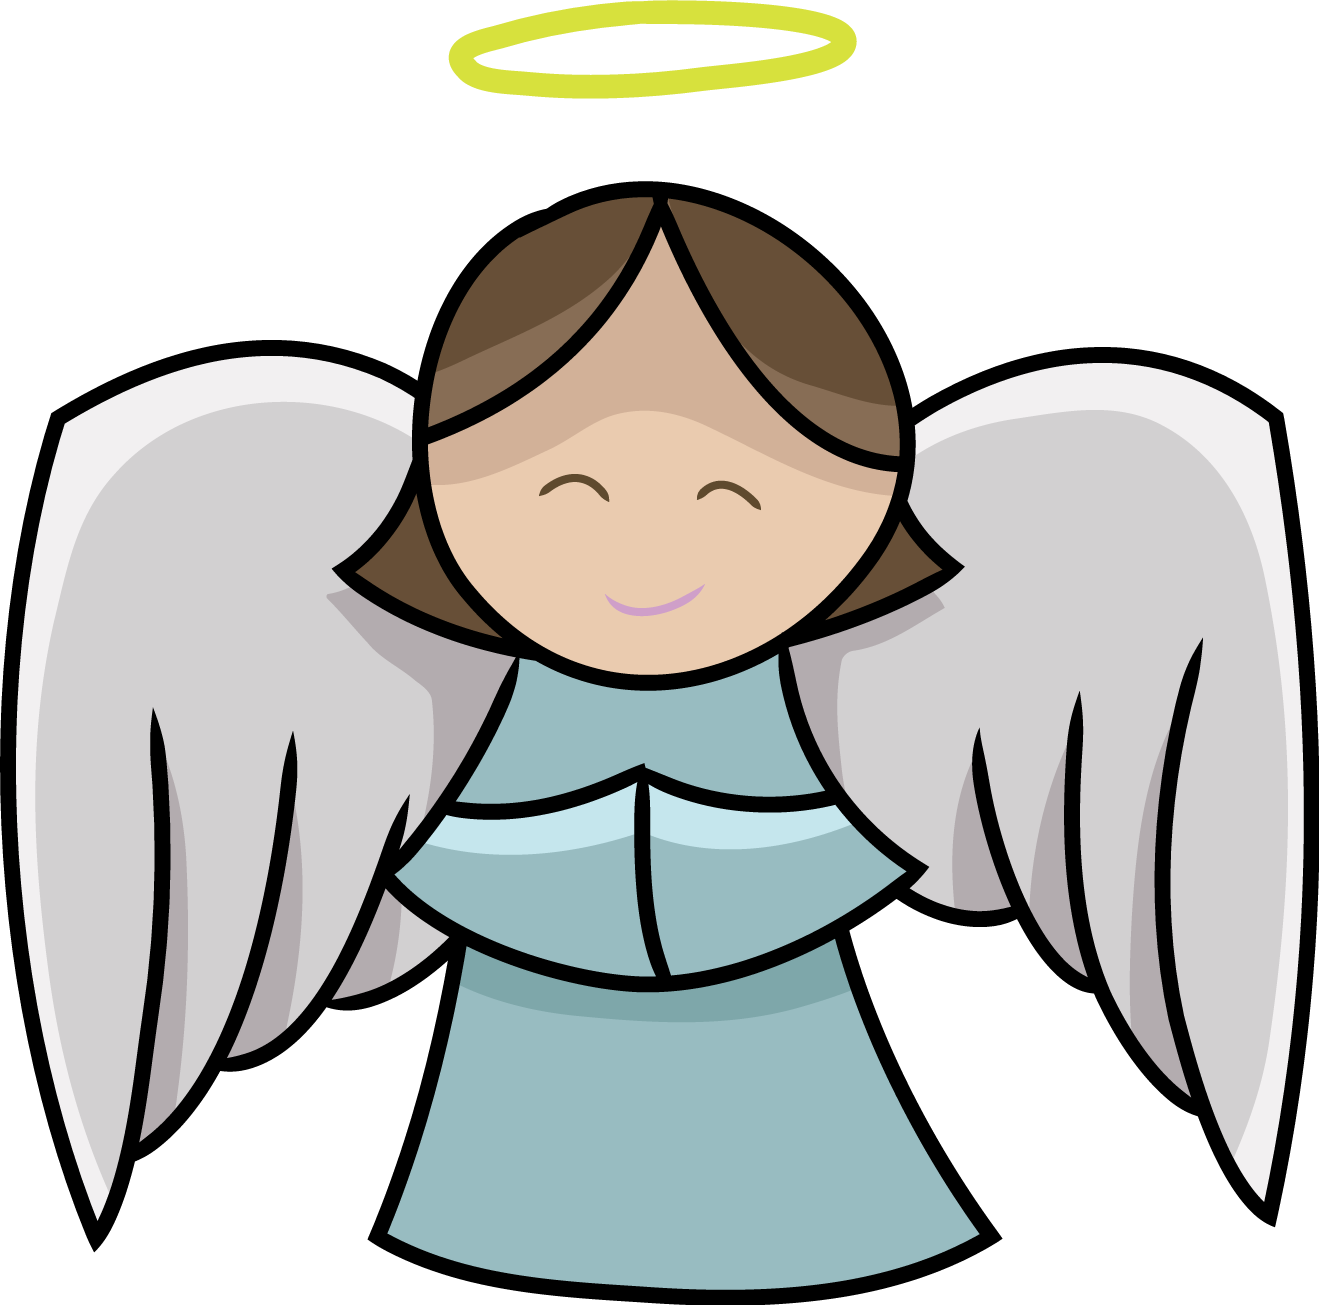 1319x1305 An Angel's Song For Your Daily Struggles Clip Art Free, Angel